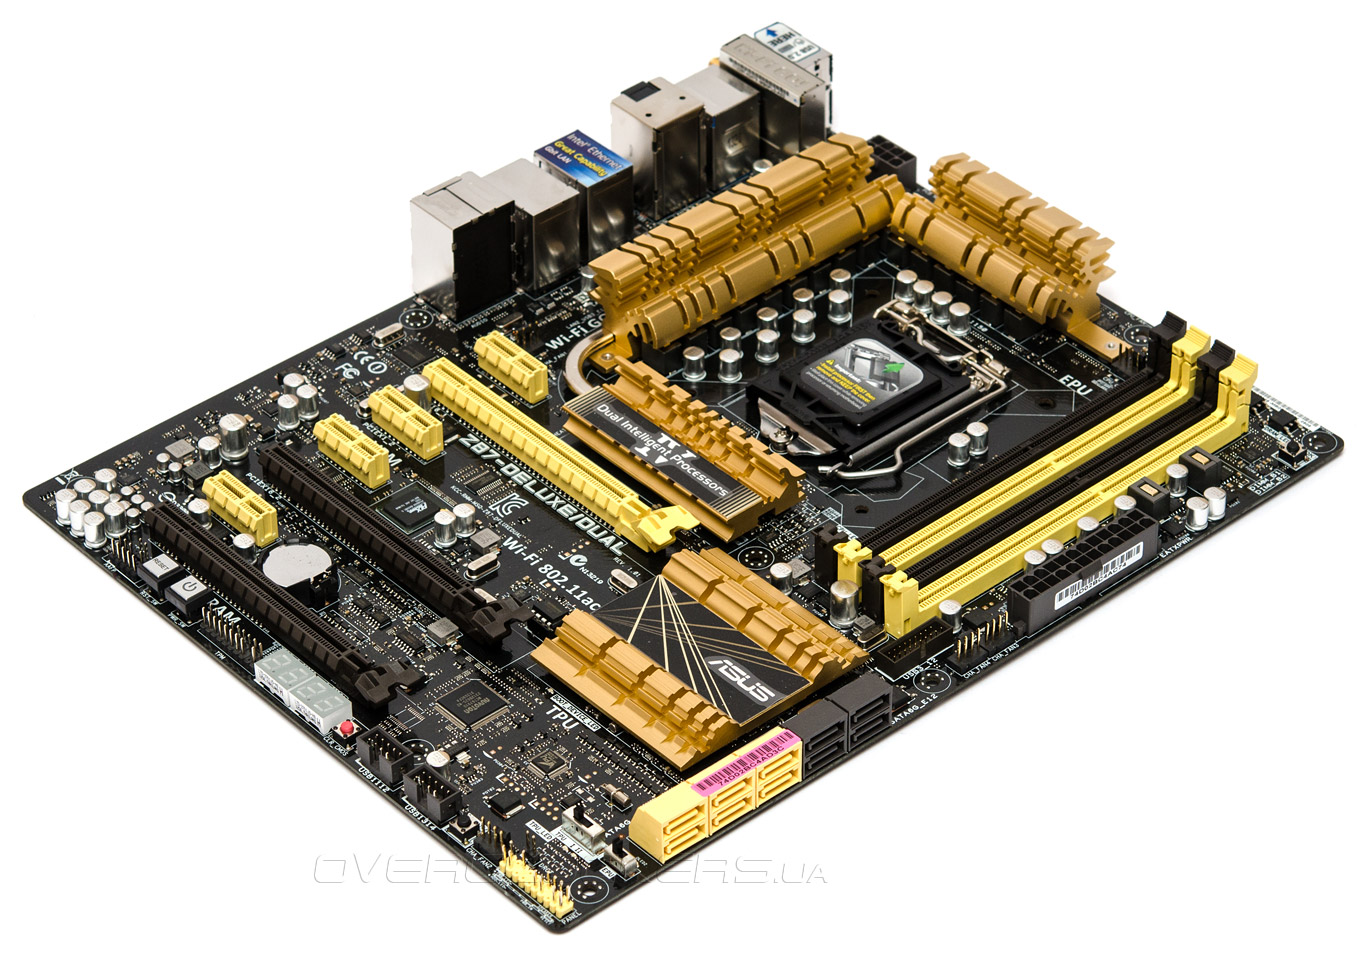 ASUS Z87-DELUXEDUAL MOTHERBOARD WINDOWS DRIVER DOWNLOAD